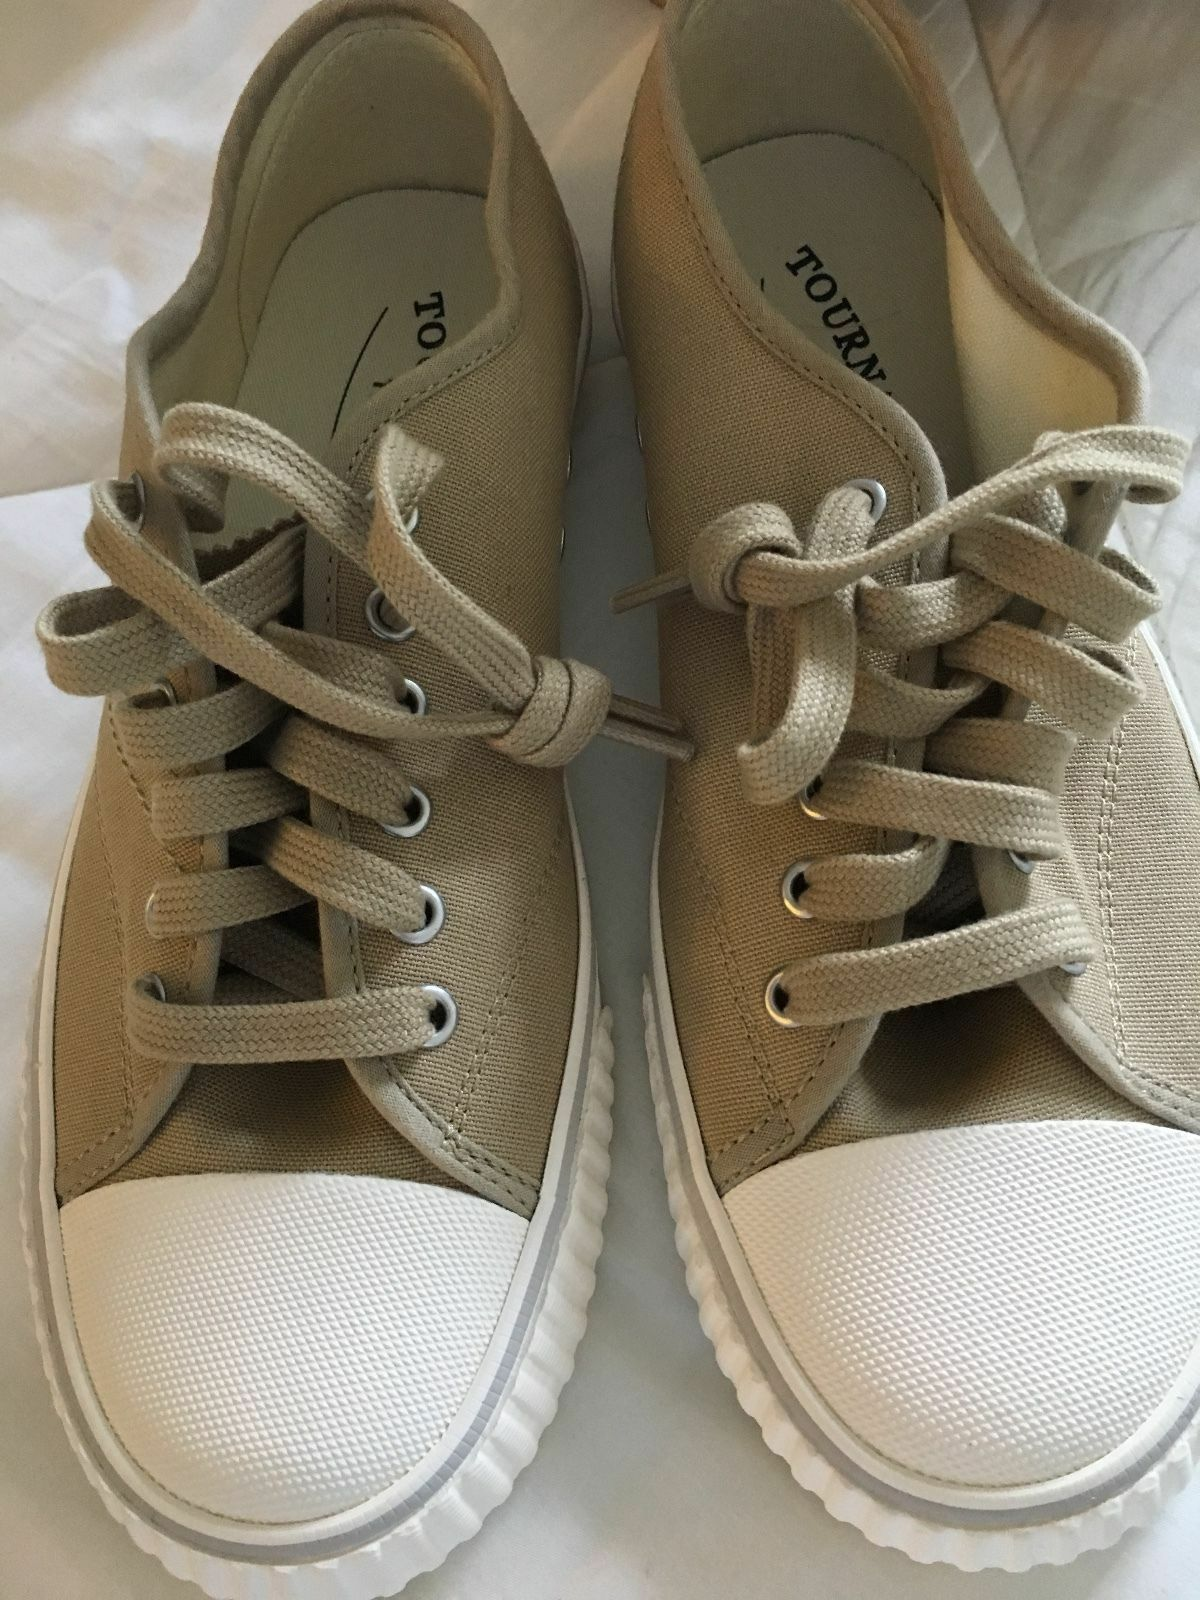 Tretorn womens  oxford tan sneakers size 7 New with box